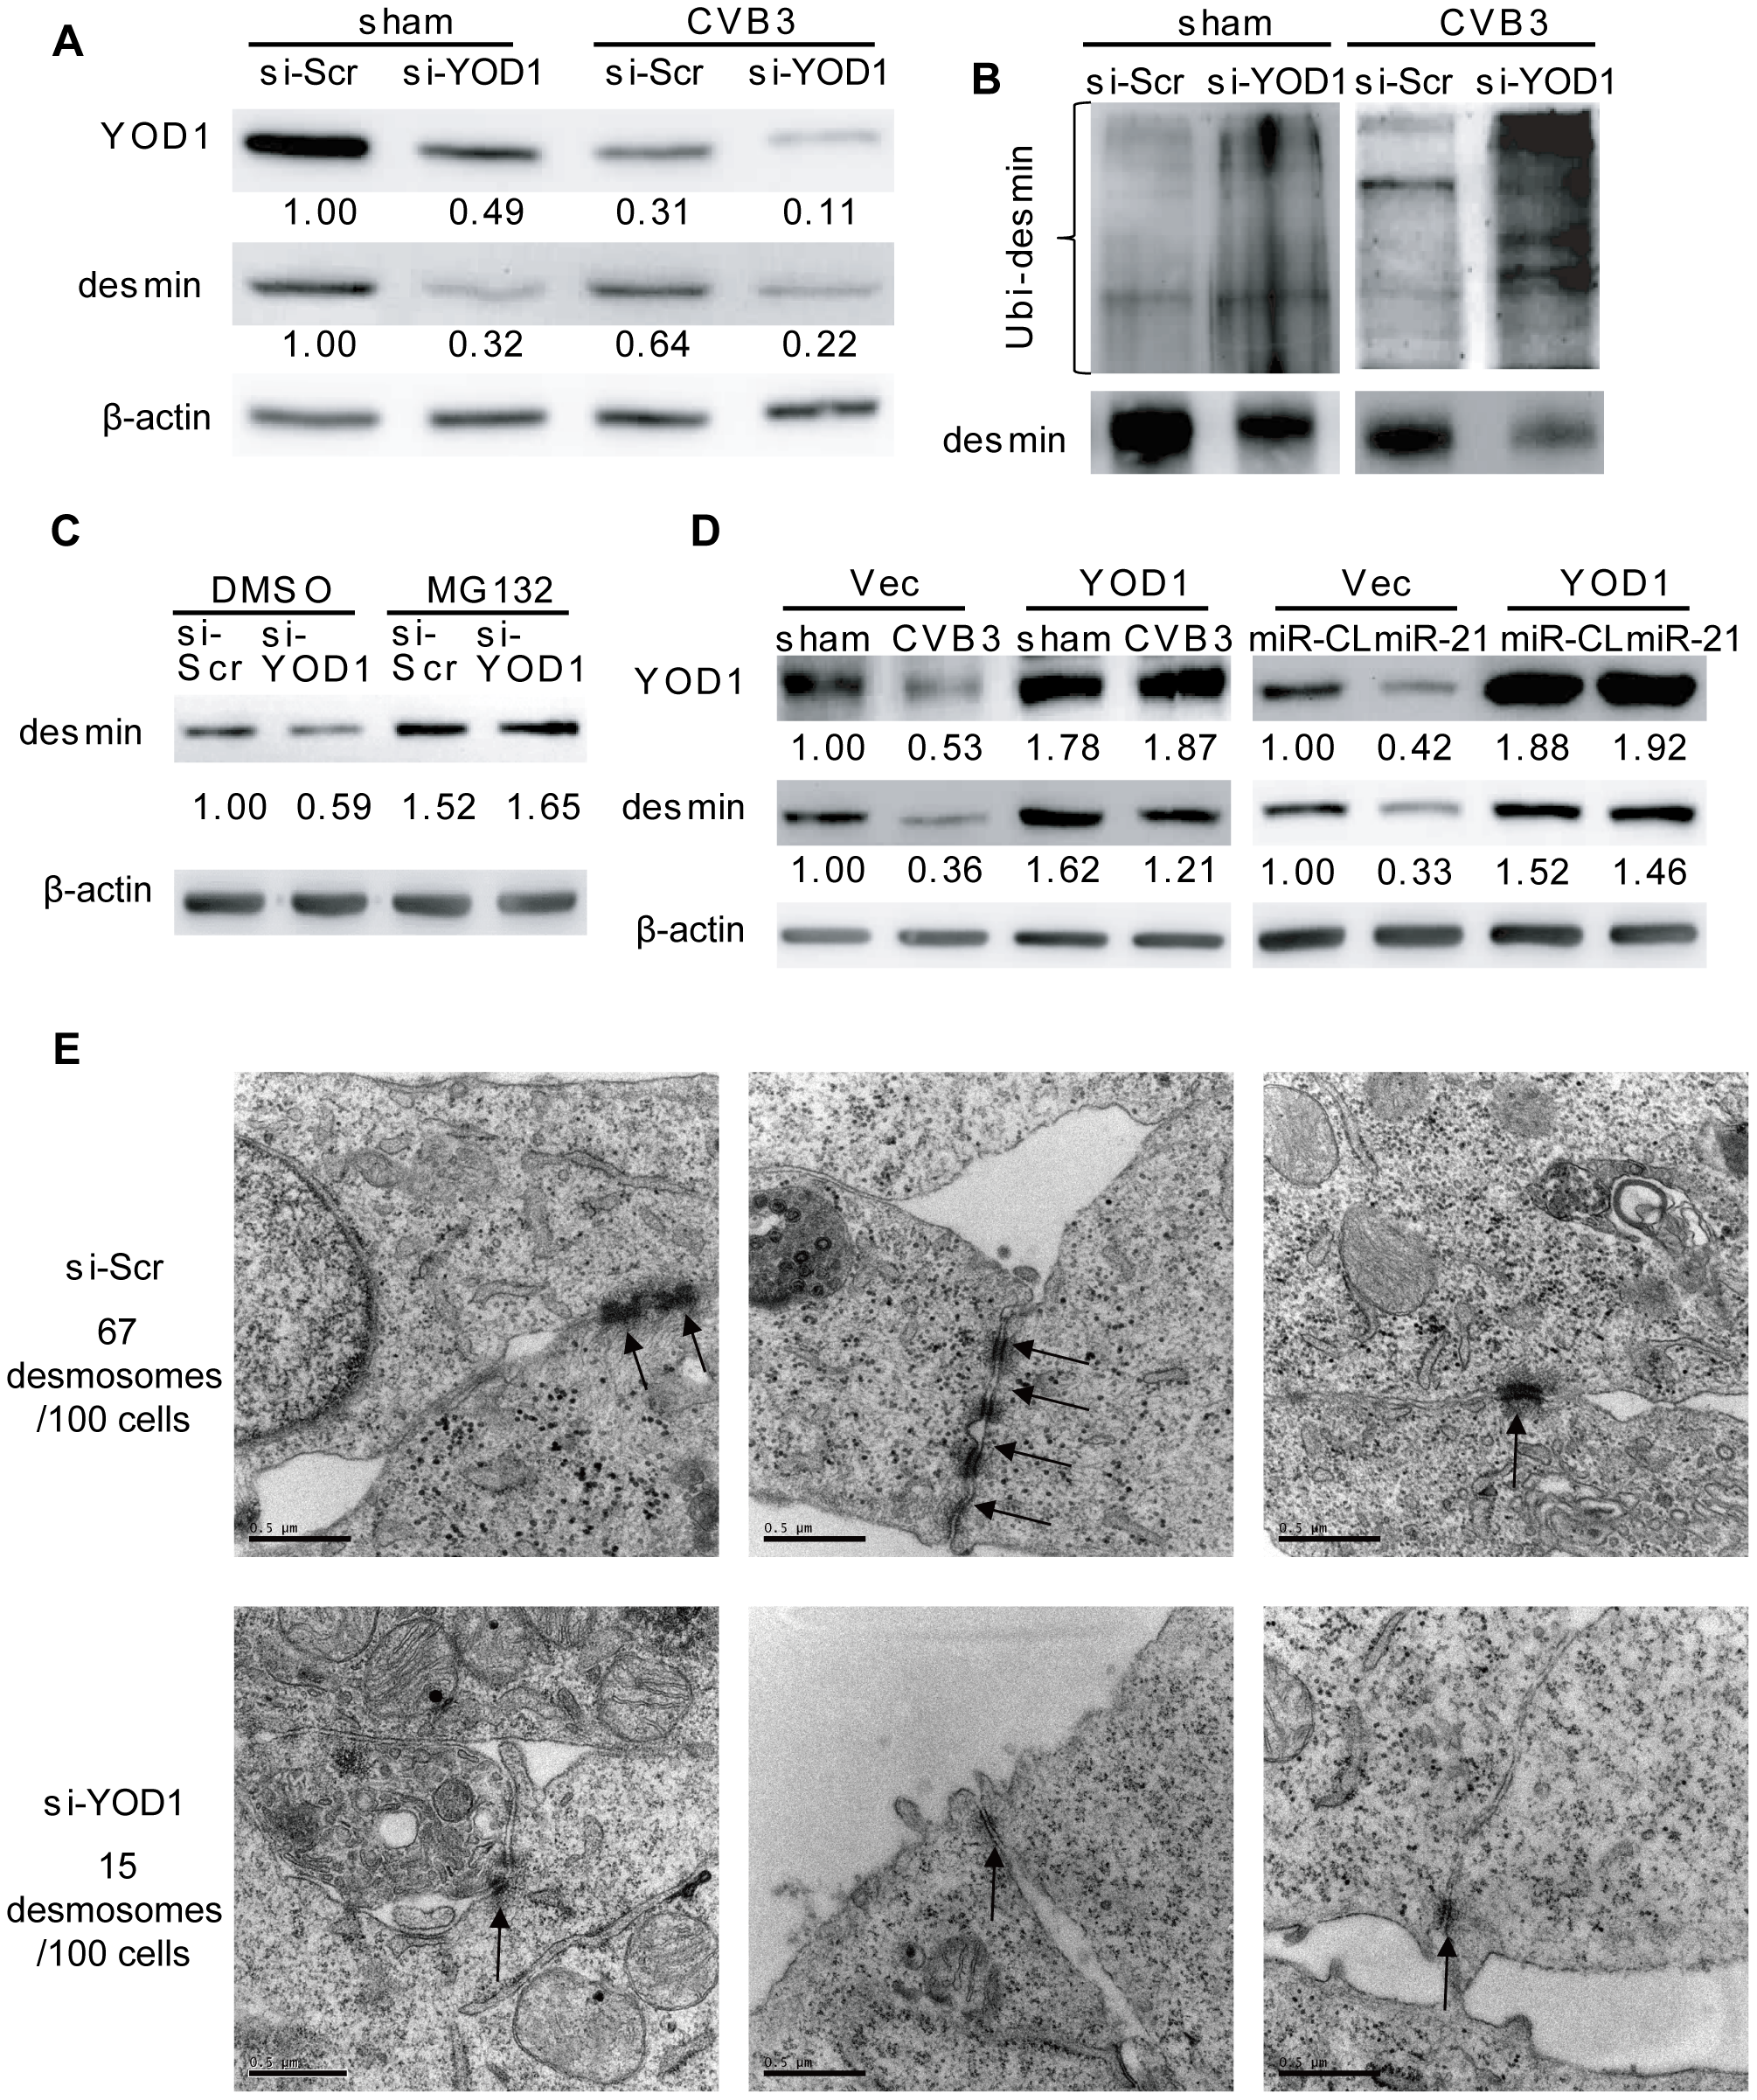 YOD1 regulates desmin degradation during CVB3 infection.